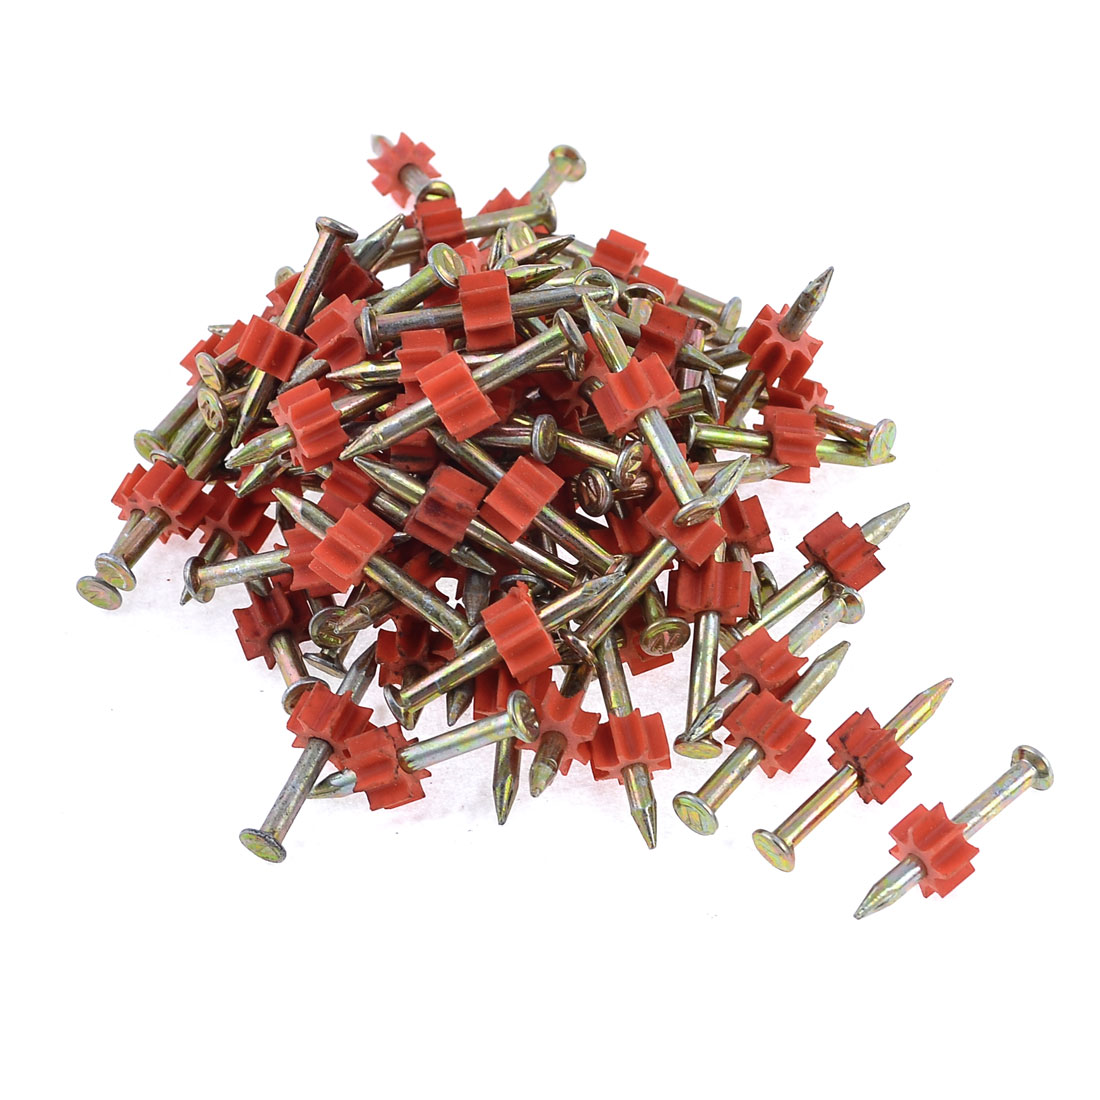 90 Pcs 2.9mm Dia Shank 30mm Long Power Hammer Drive Pins Fasteners